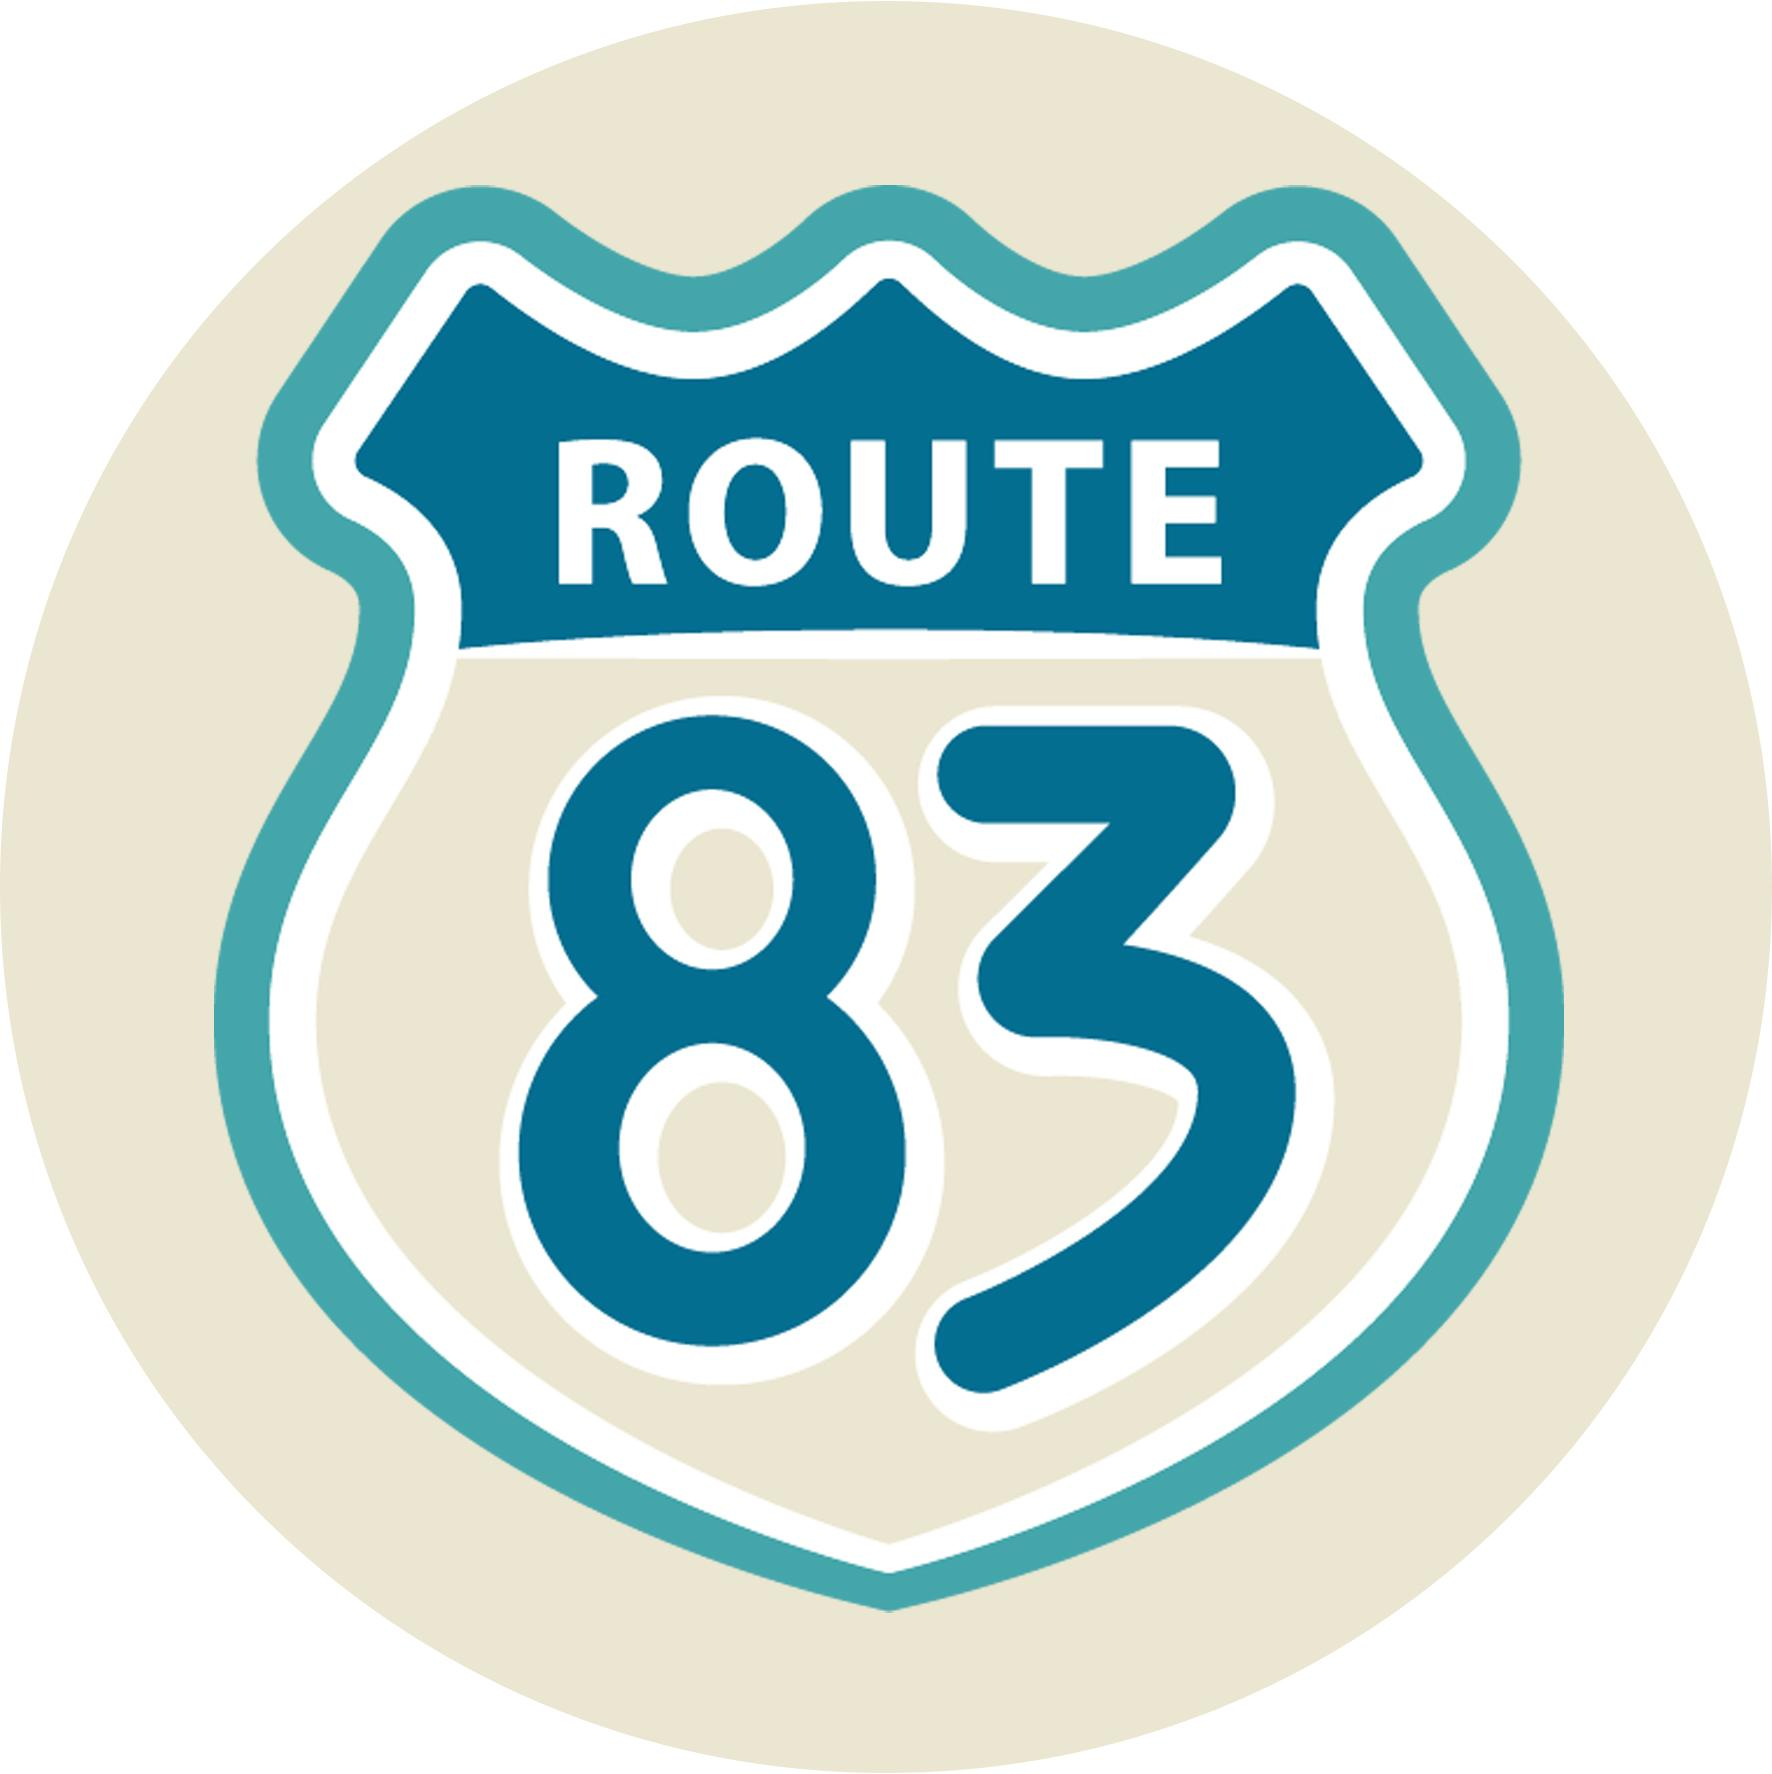 What is Route 83?